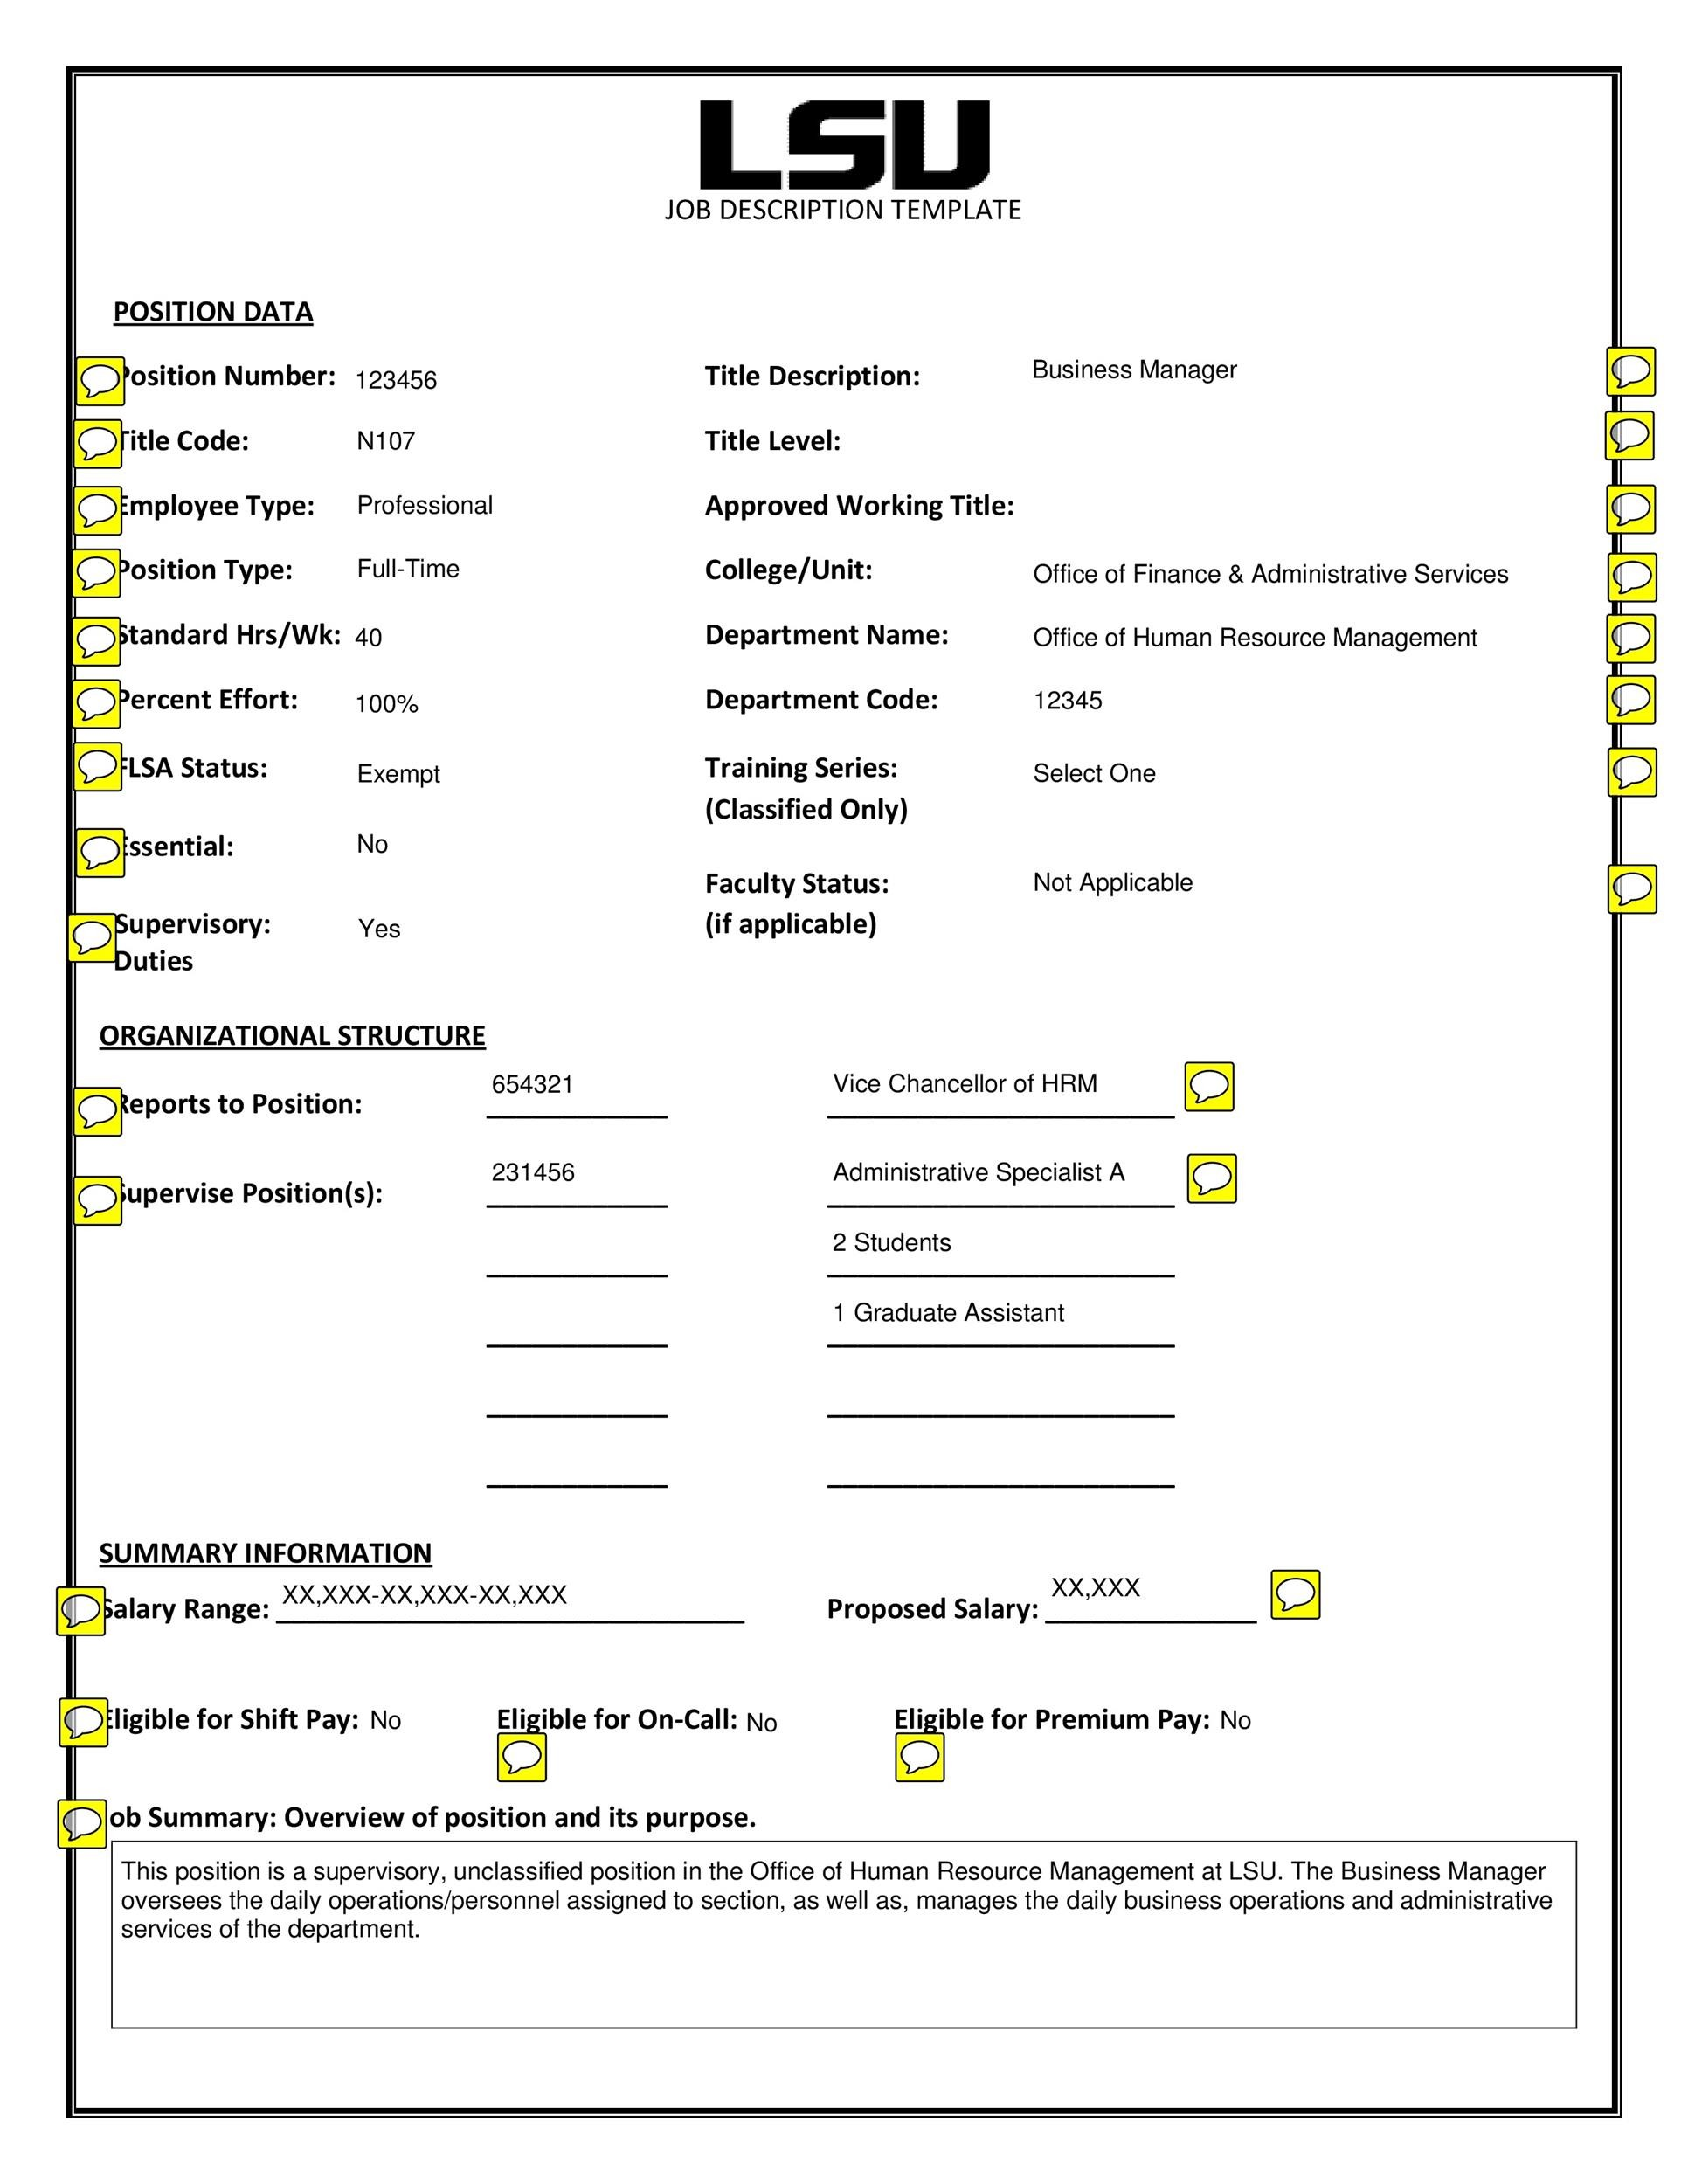 Free Job Description Template 14